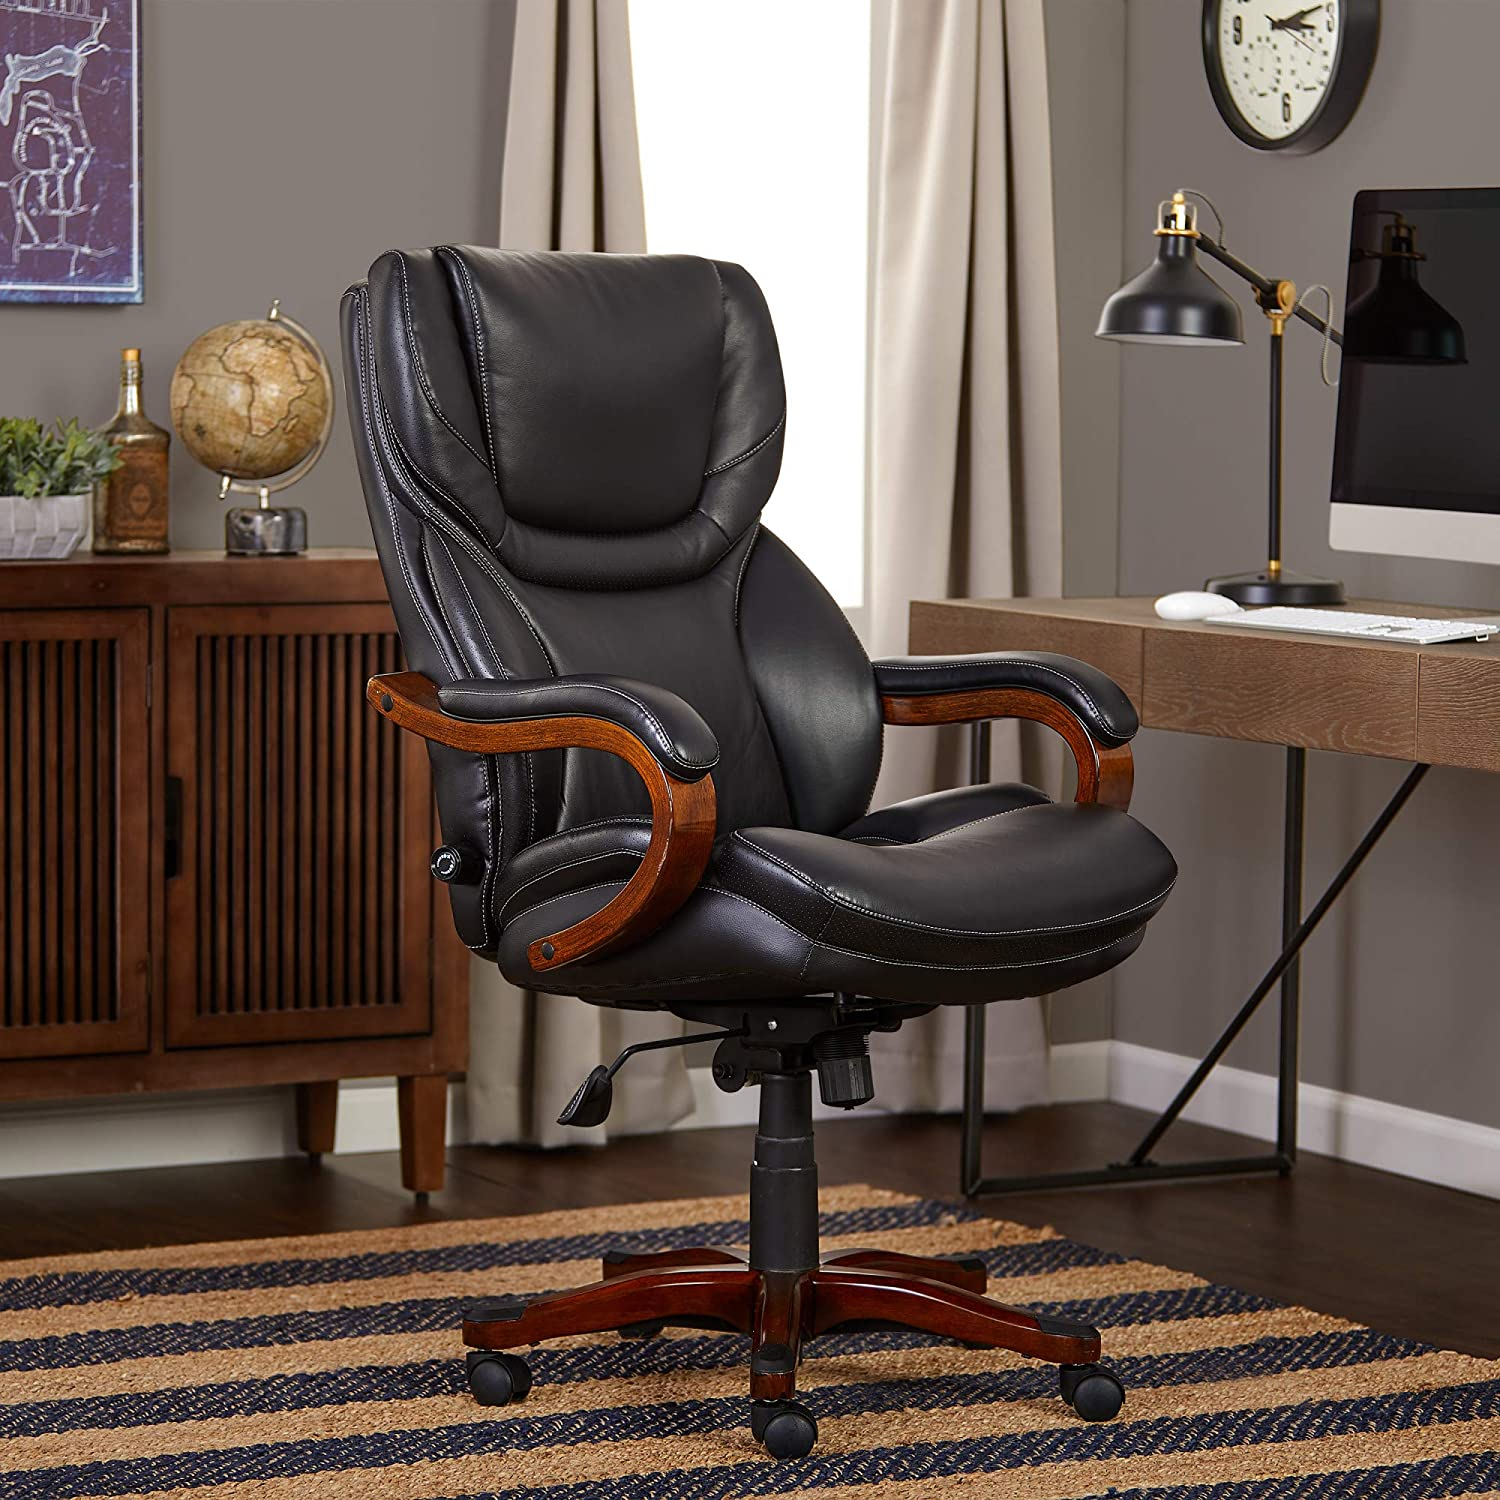 Serta Bonded Leather Big Tall Executive Chair, Brainstorm Black, 46859